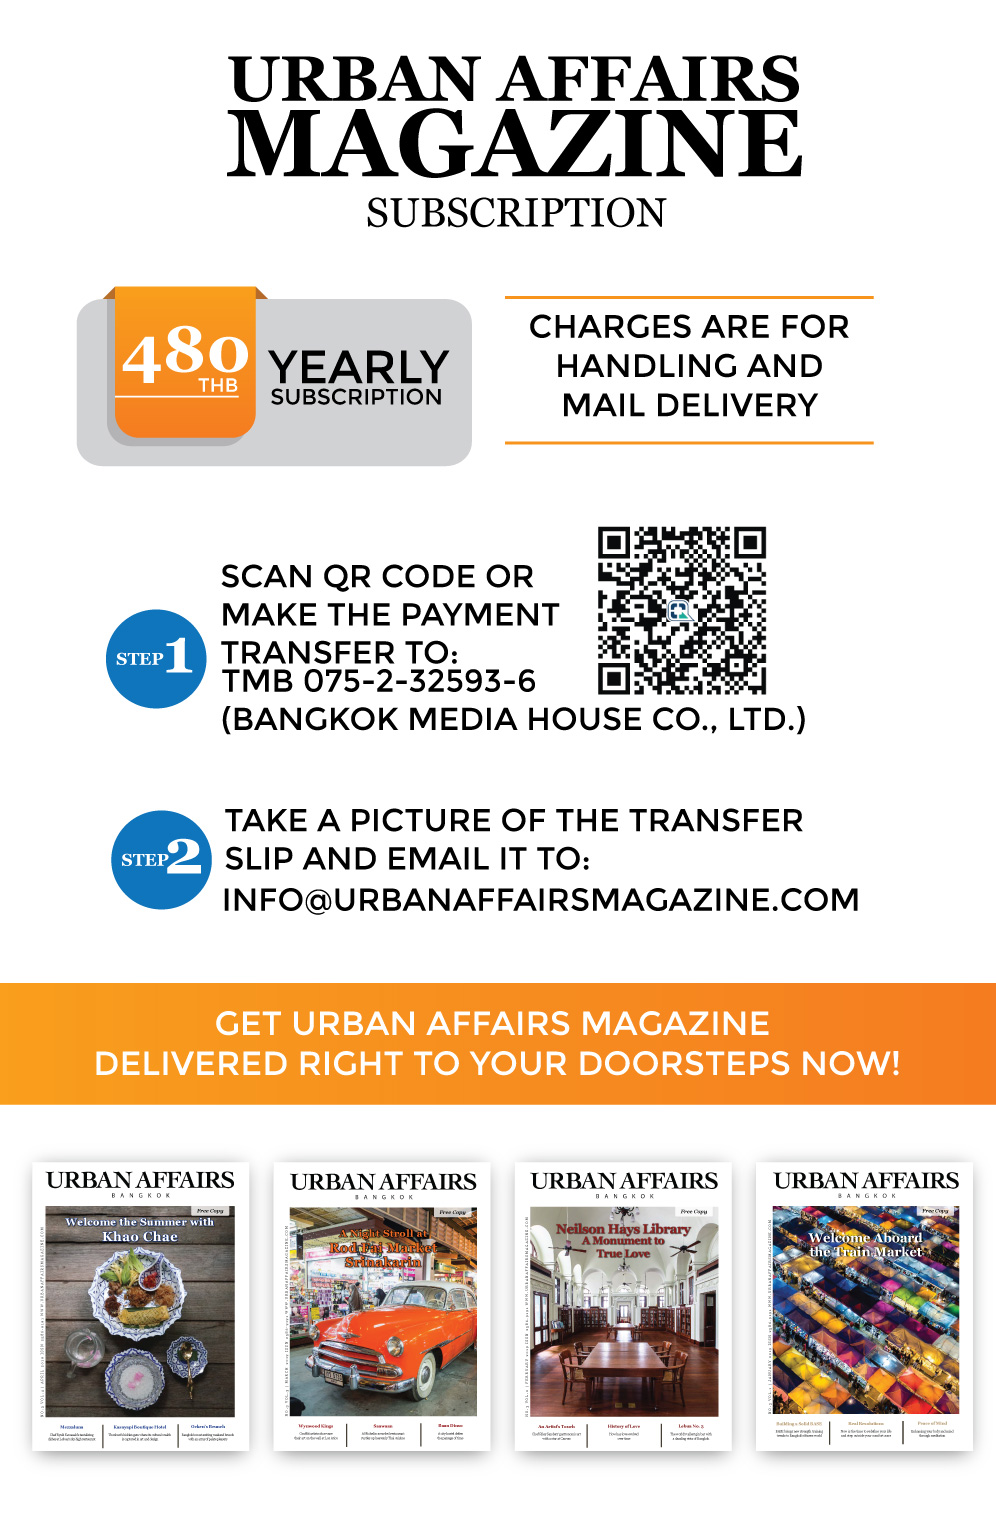 Urban Affairs Magazine Subscription